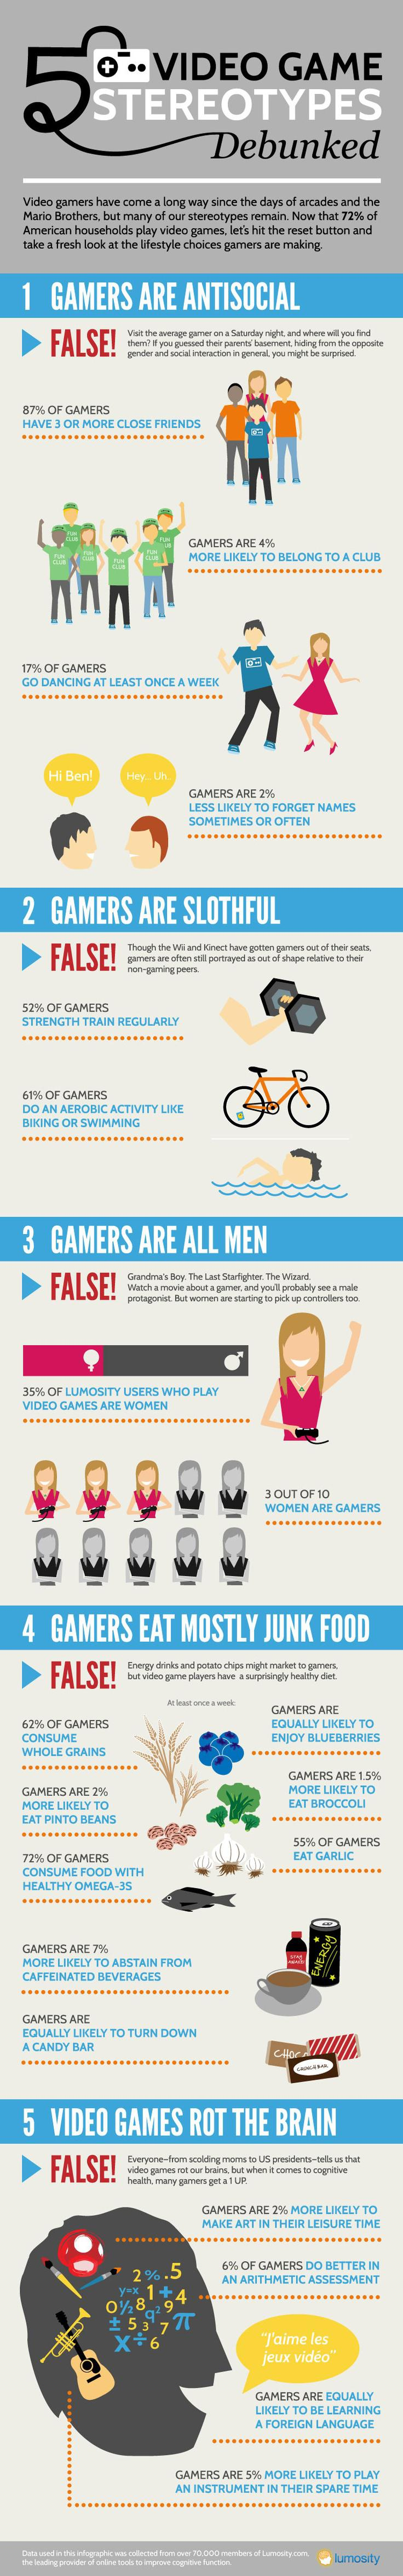 infographic_gamers